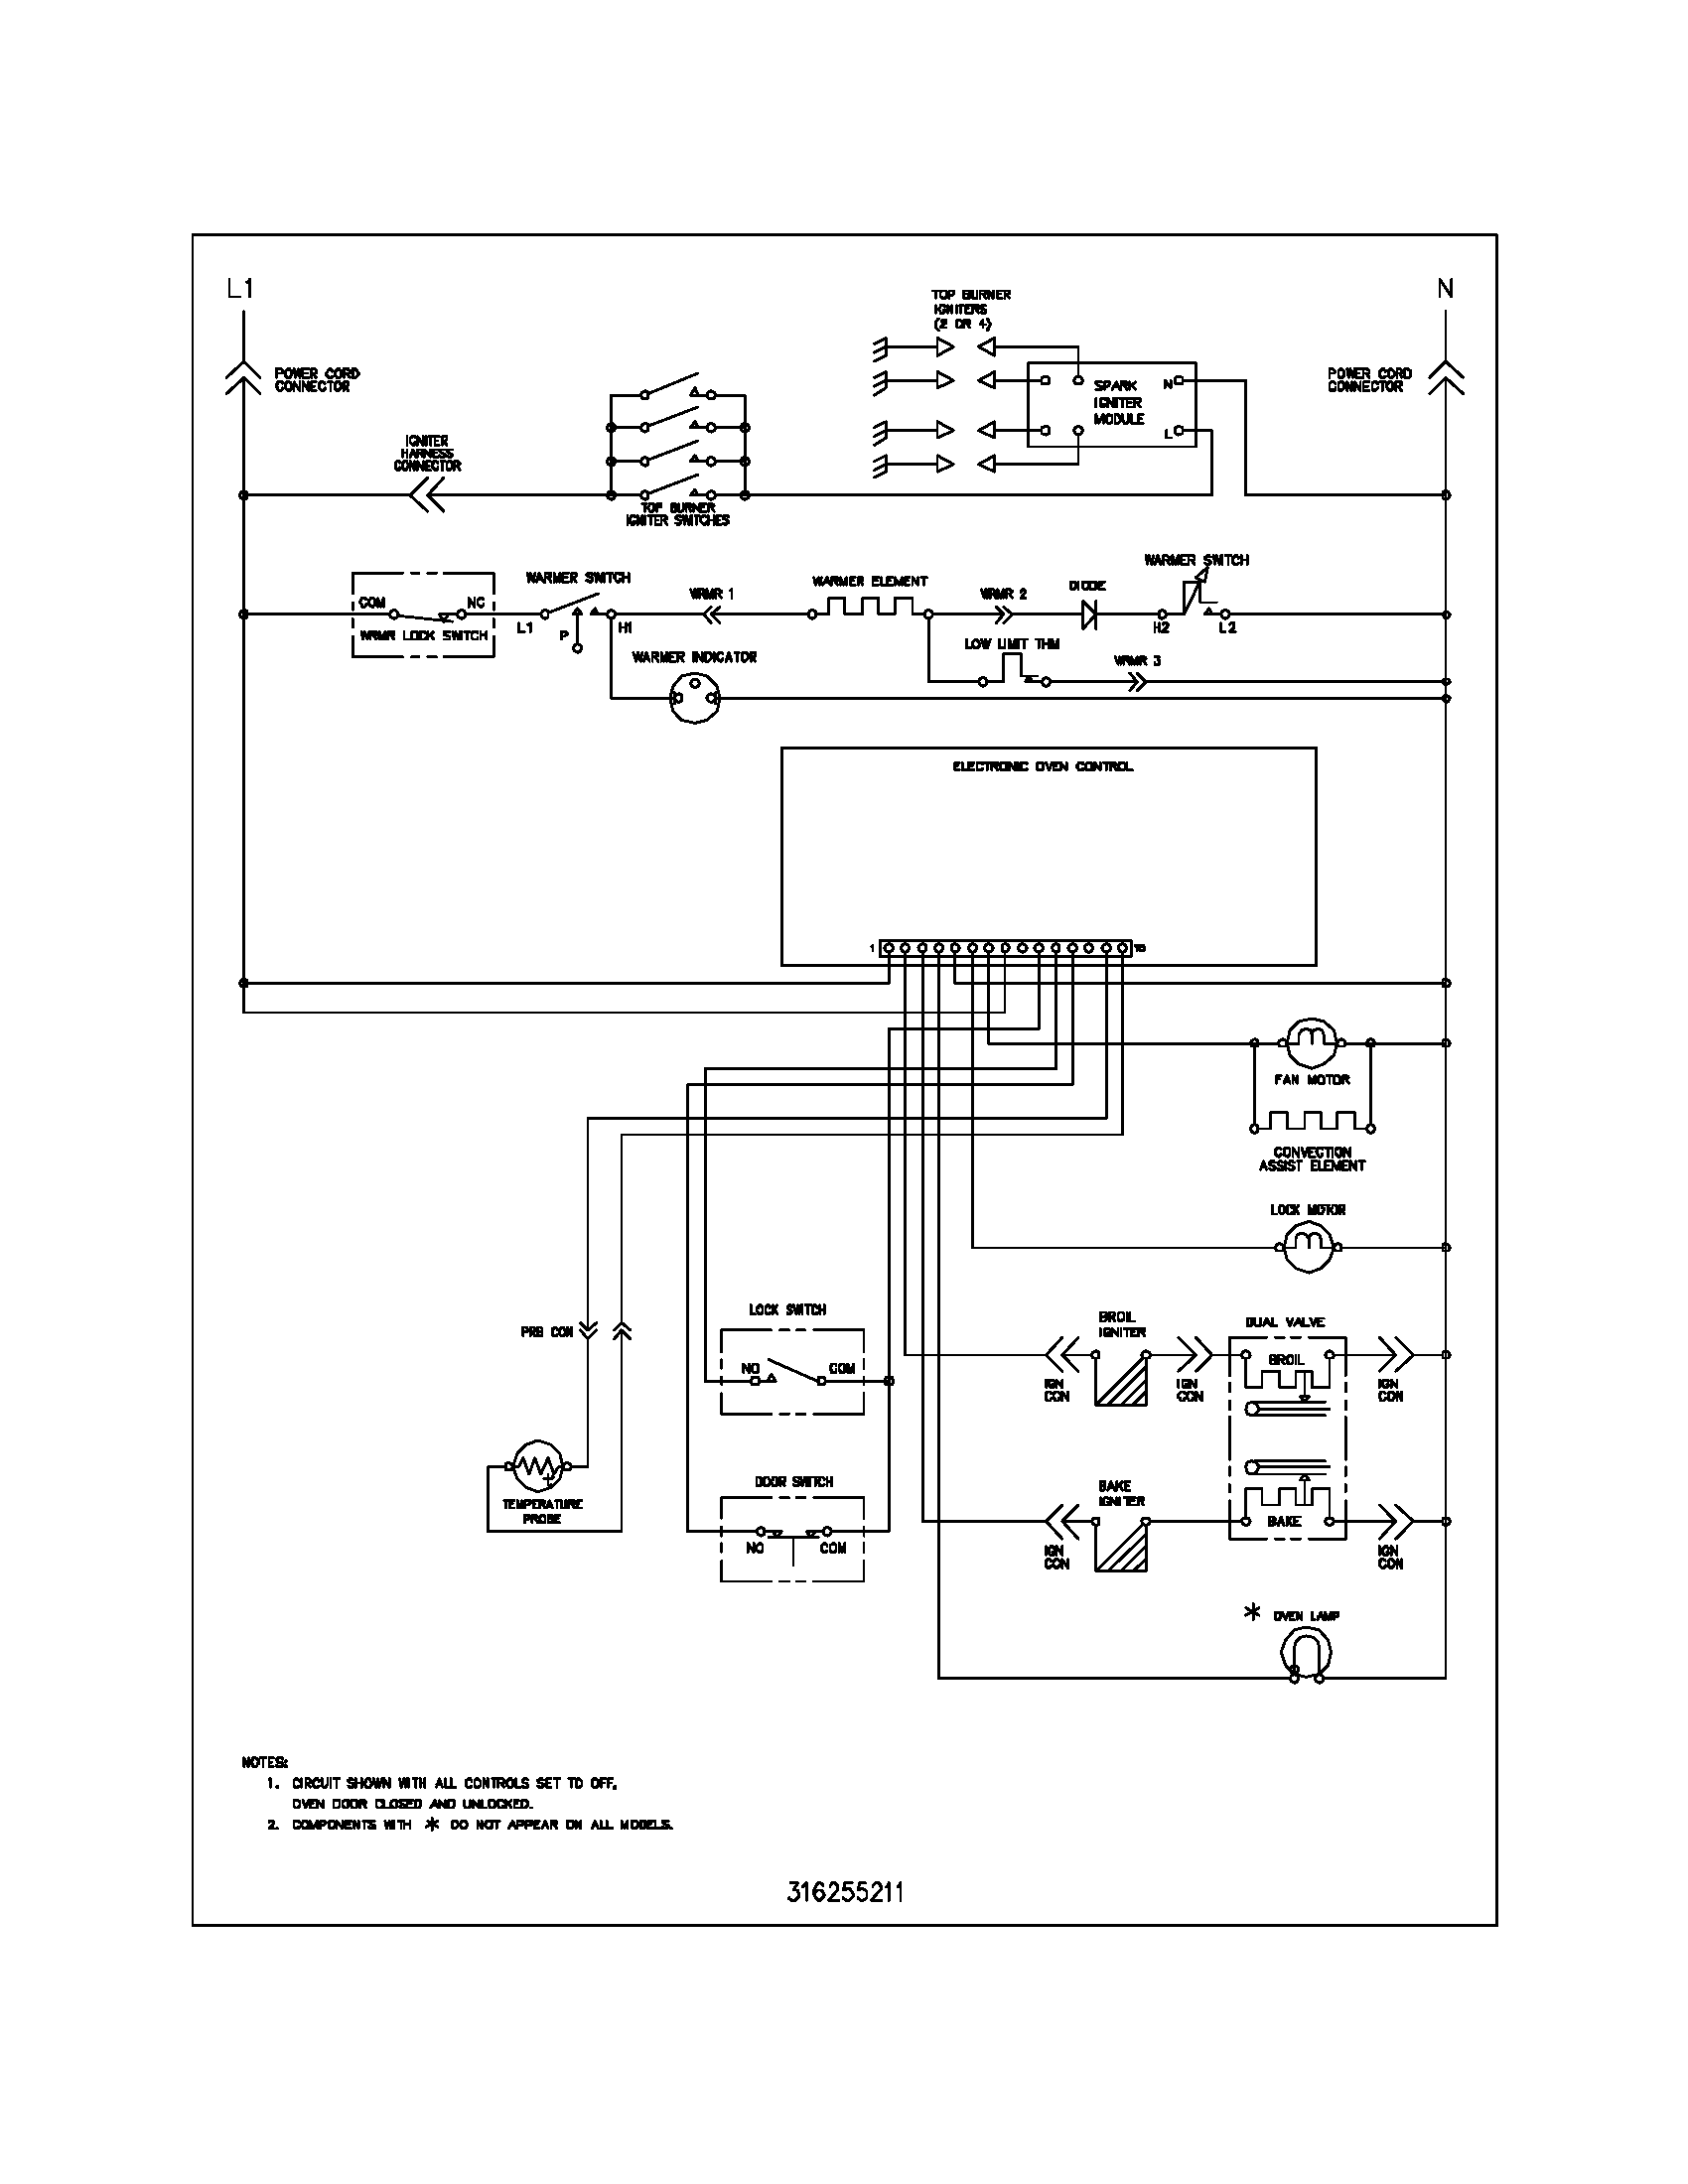 wiring schematic parts frigidaire plgf389ccc gas range timer stove clocks and appliance old gas furnace wiring diagram at readyjetset.co